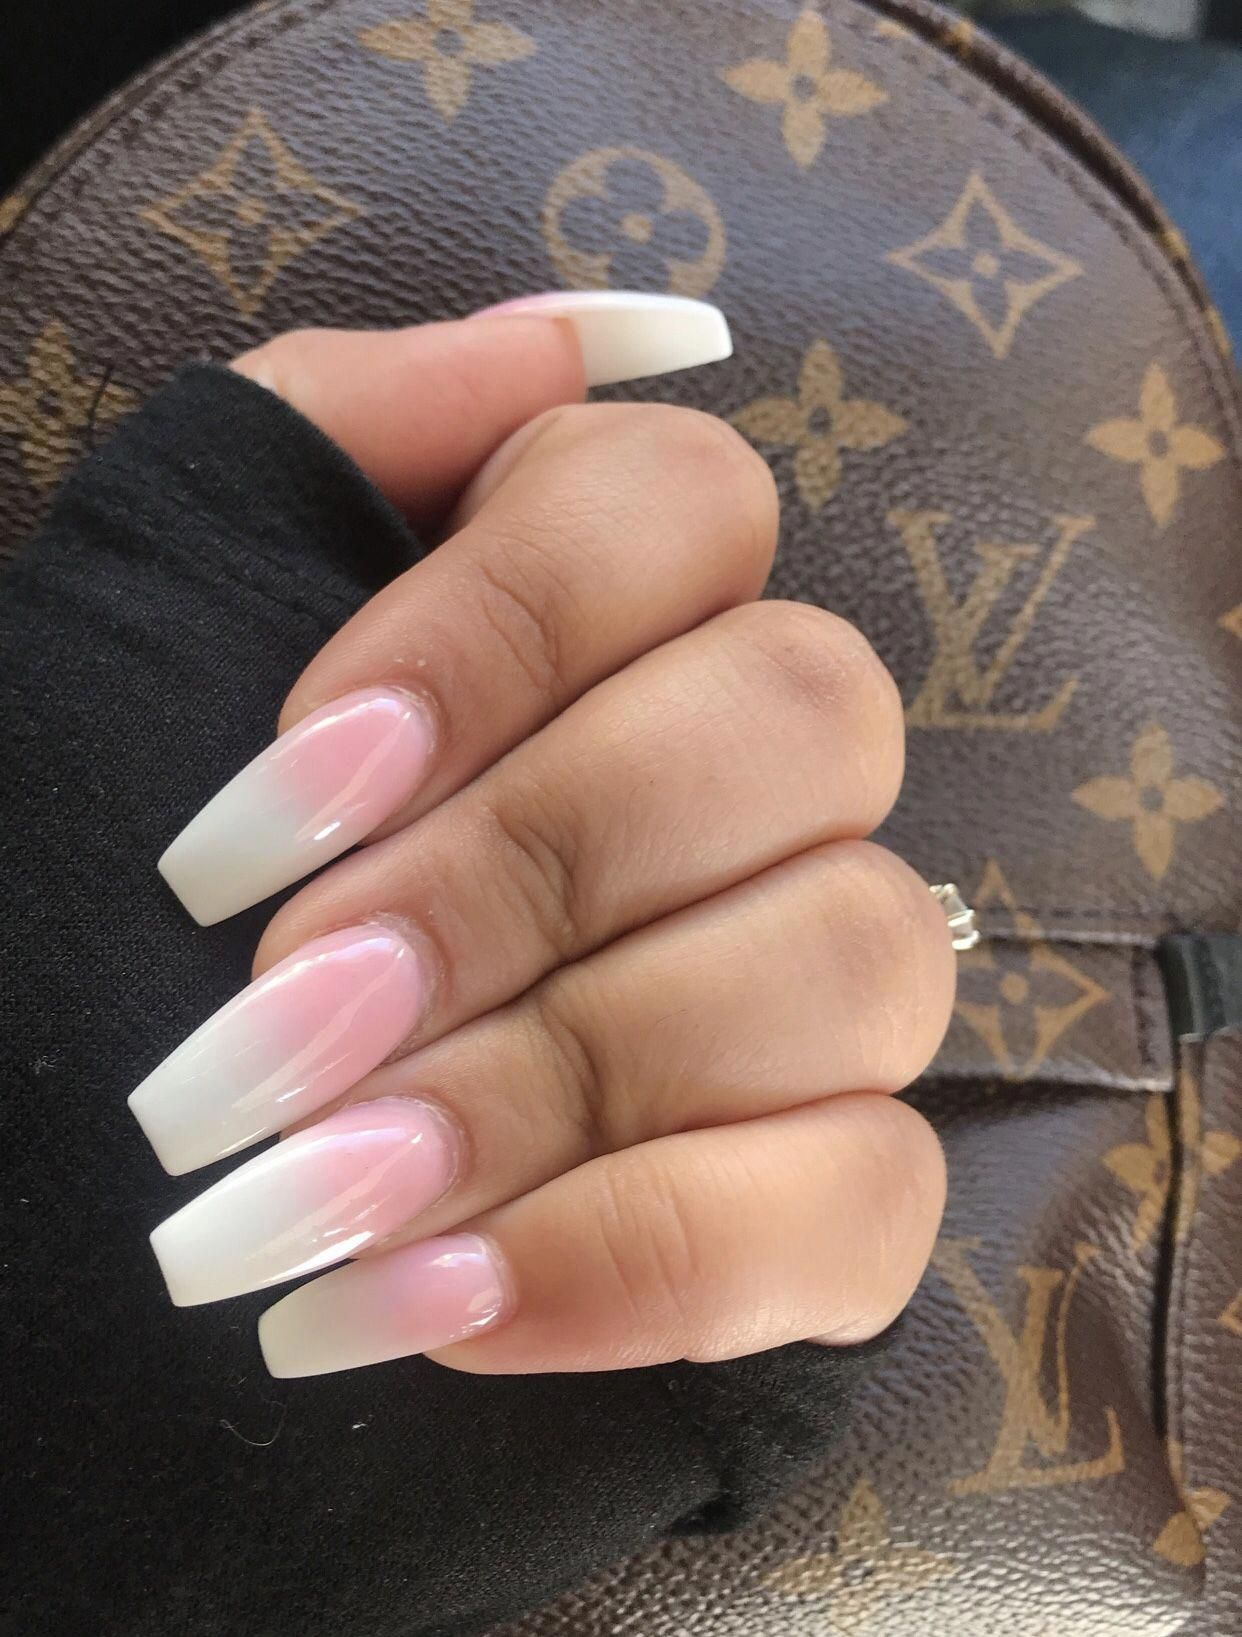 White Pink Ombre Coffin Nails Acrylic Powder Typesofnaildesigns Black Acrylic Nails Acrylic Nail Liquid White Nails